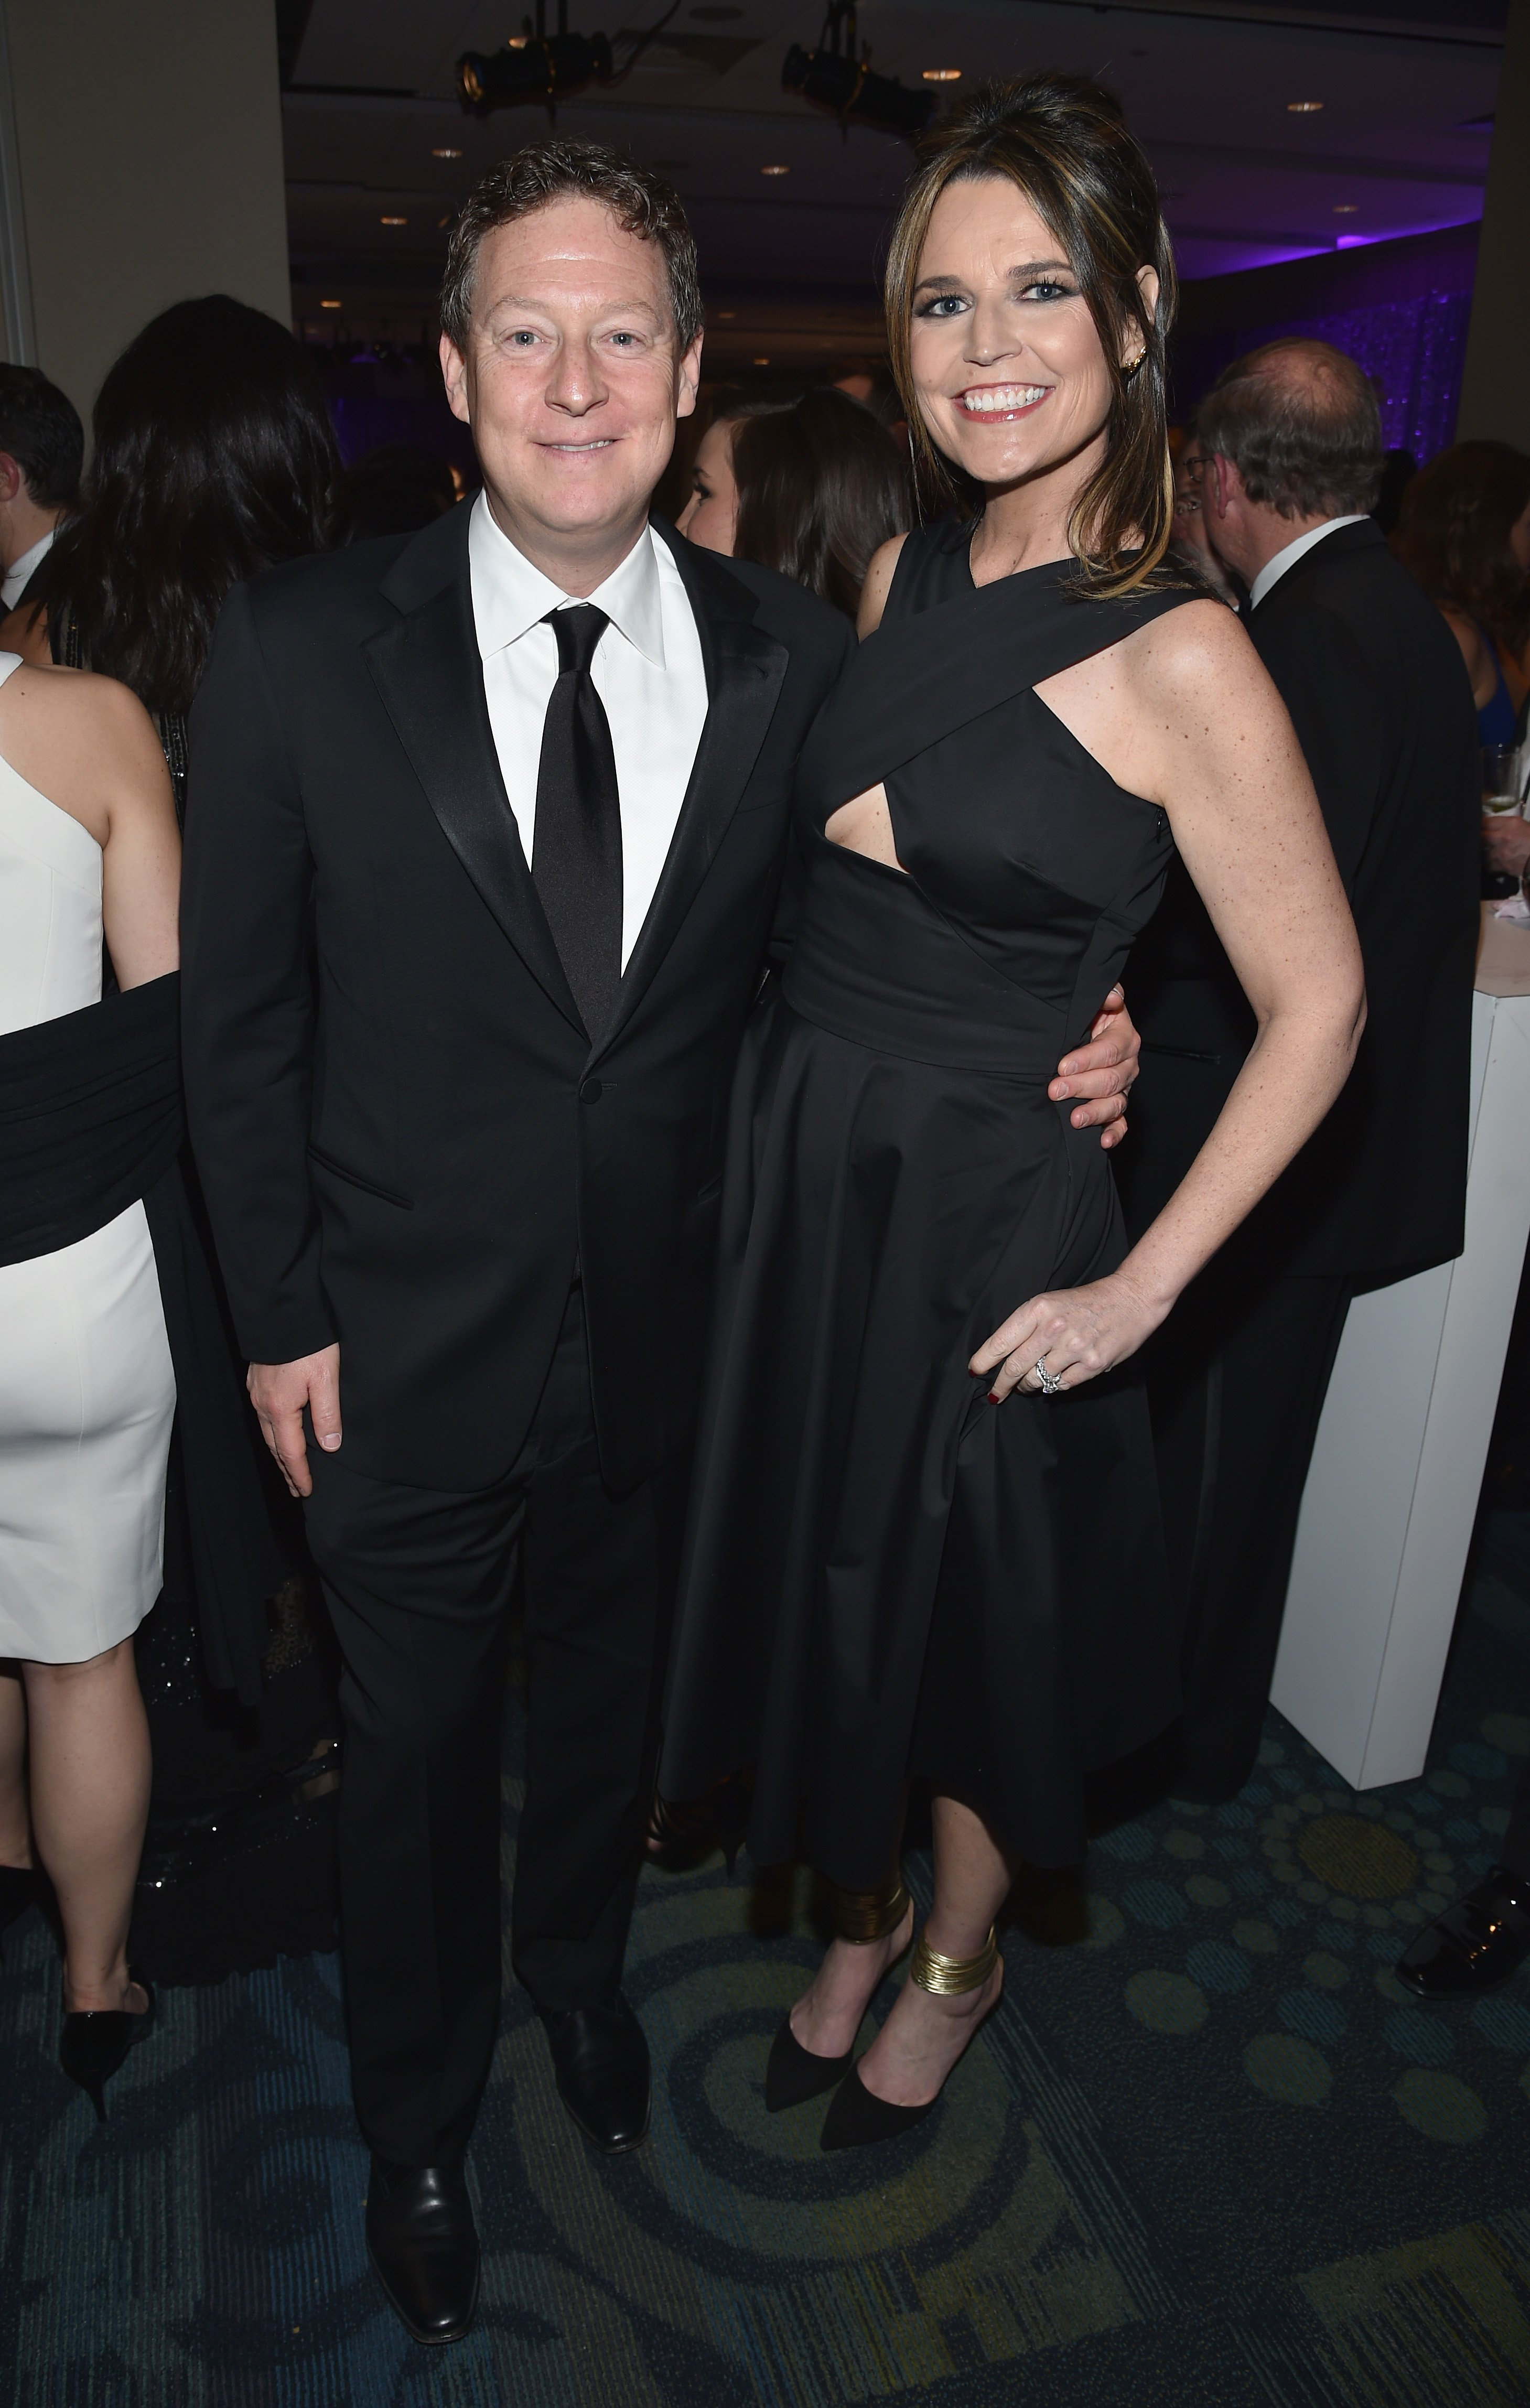 Savannah Guthrie and Michael Feldman attend the Yahoo News/ABC News White House Correspondents' Dinner Pre-Party at Washington Hilton on April 30, 2016 | Photo: GettyImages